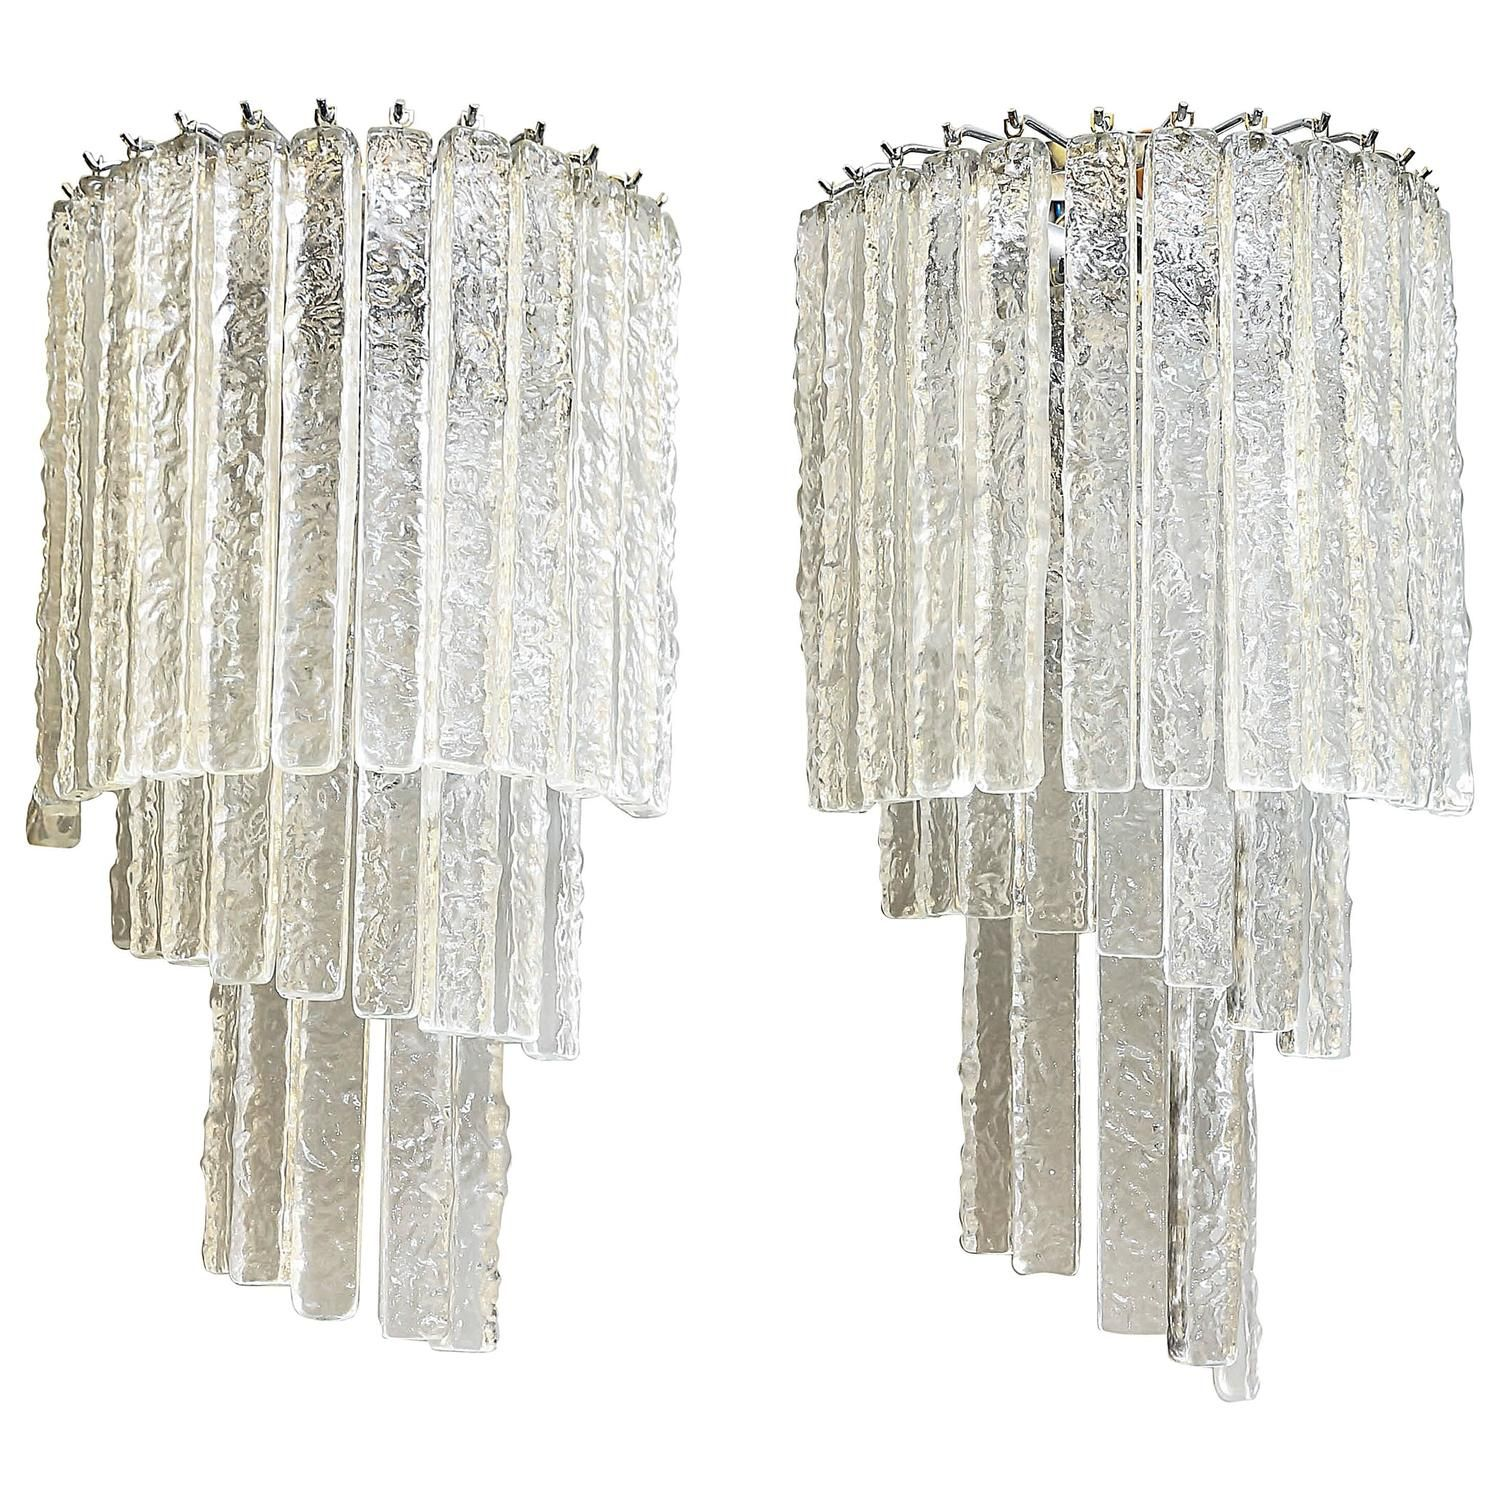 Pair Of Mid Century Murano Glass Wall Sconces From A Unique Collection Of Antique And Modern Wall Lights And Sconces At Https Www 1stdibs Com Furniture Ligh